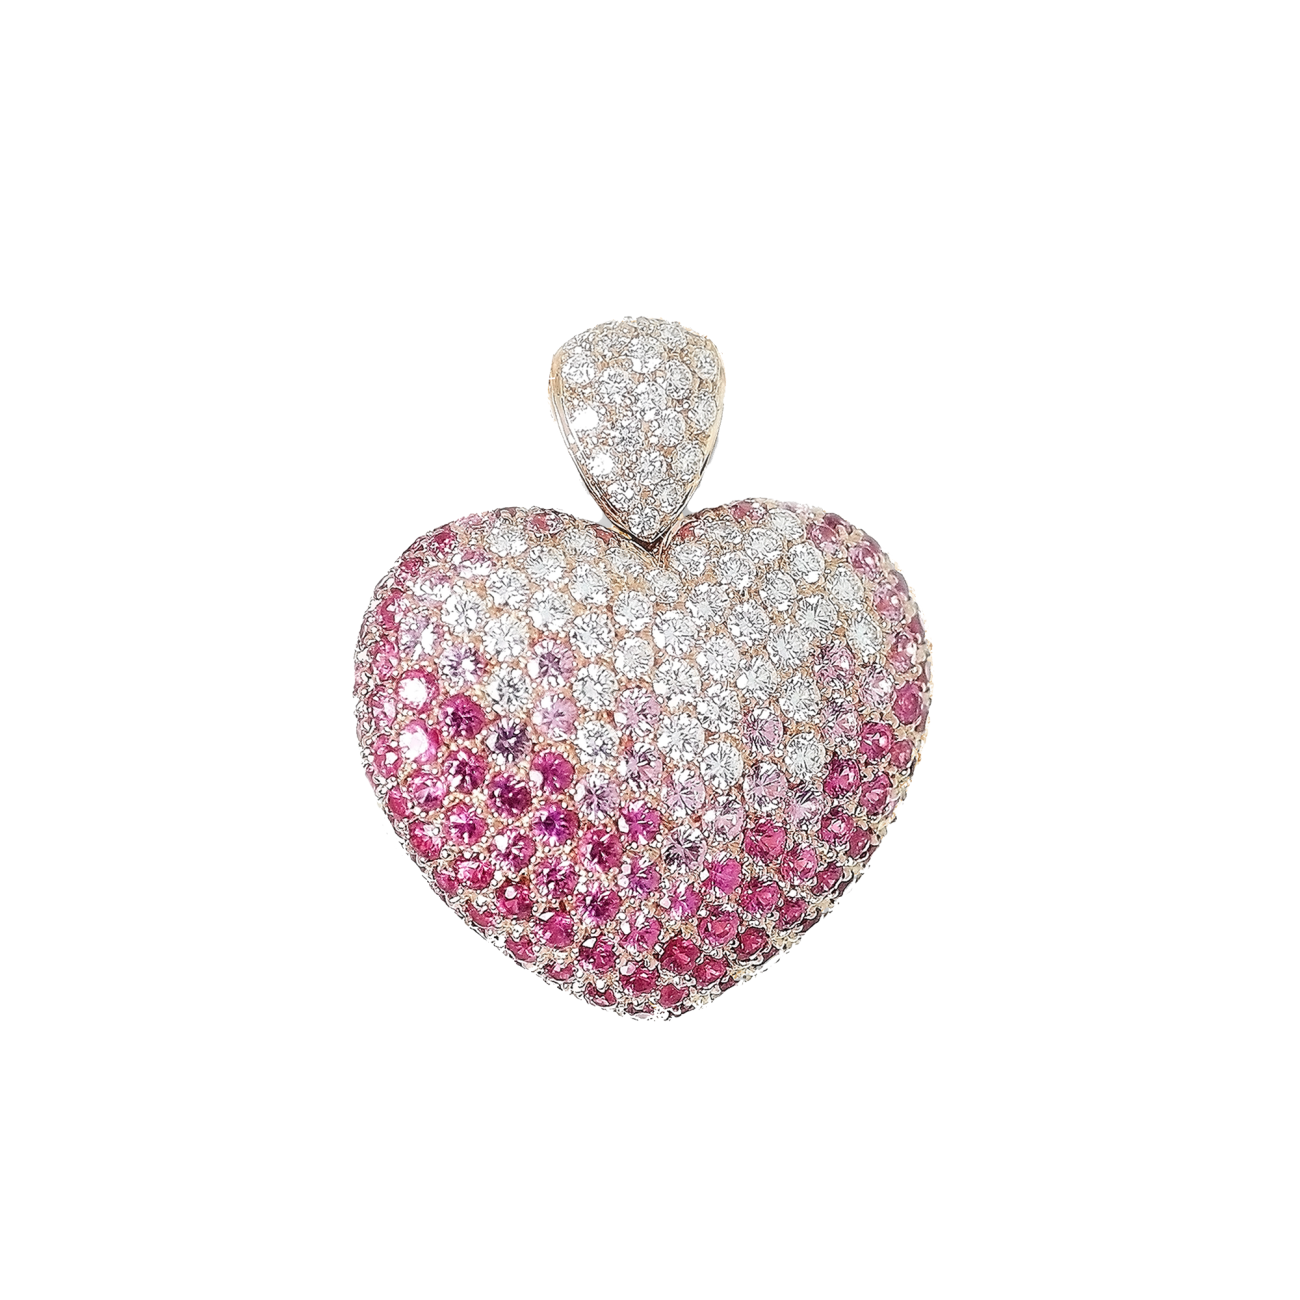 Leo Pizzo Jewelry - Leo Pizzo Puffed Diamond and Pink Sapphire Heart Shaped Necklace | Manfredi Jewels